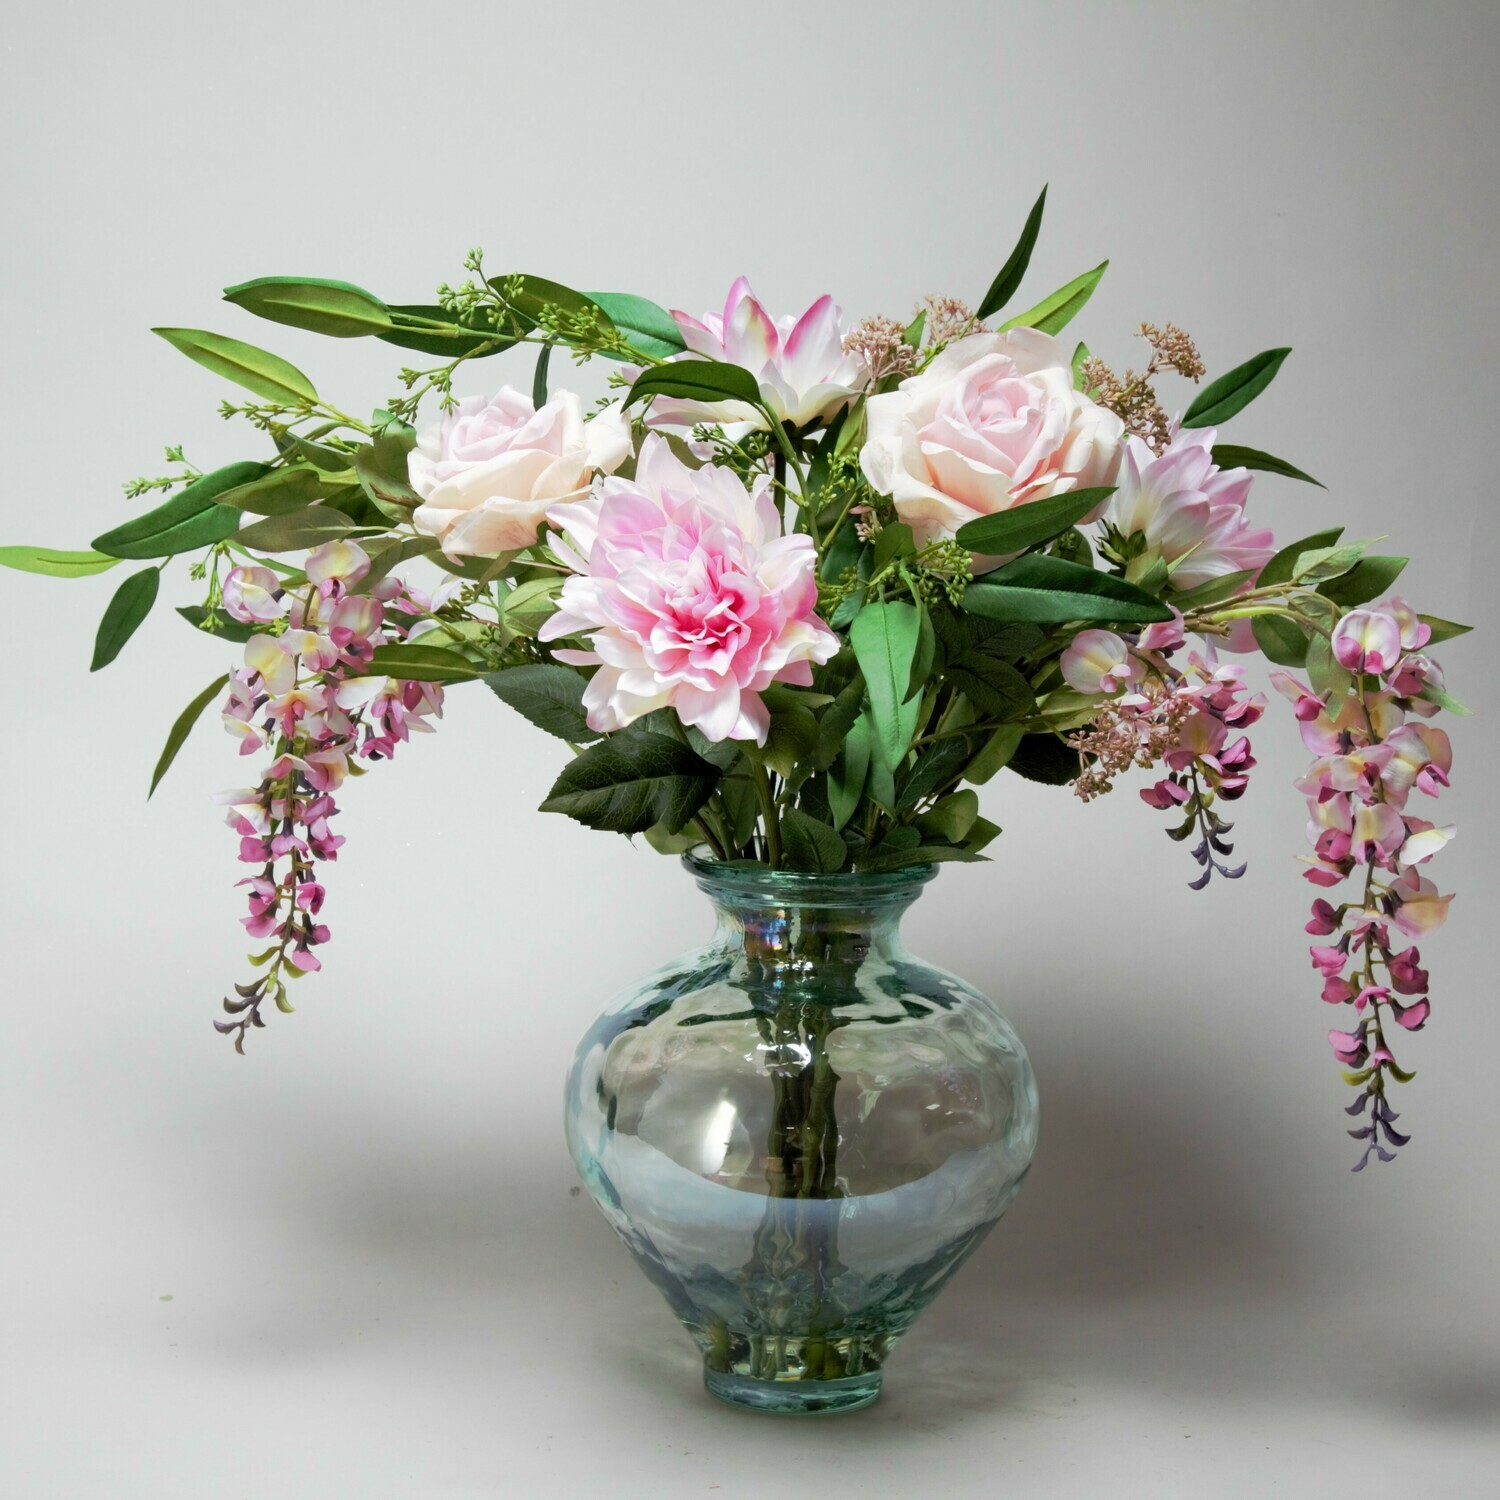 Rose, Dahlia and wisteria mix in costal vase